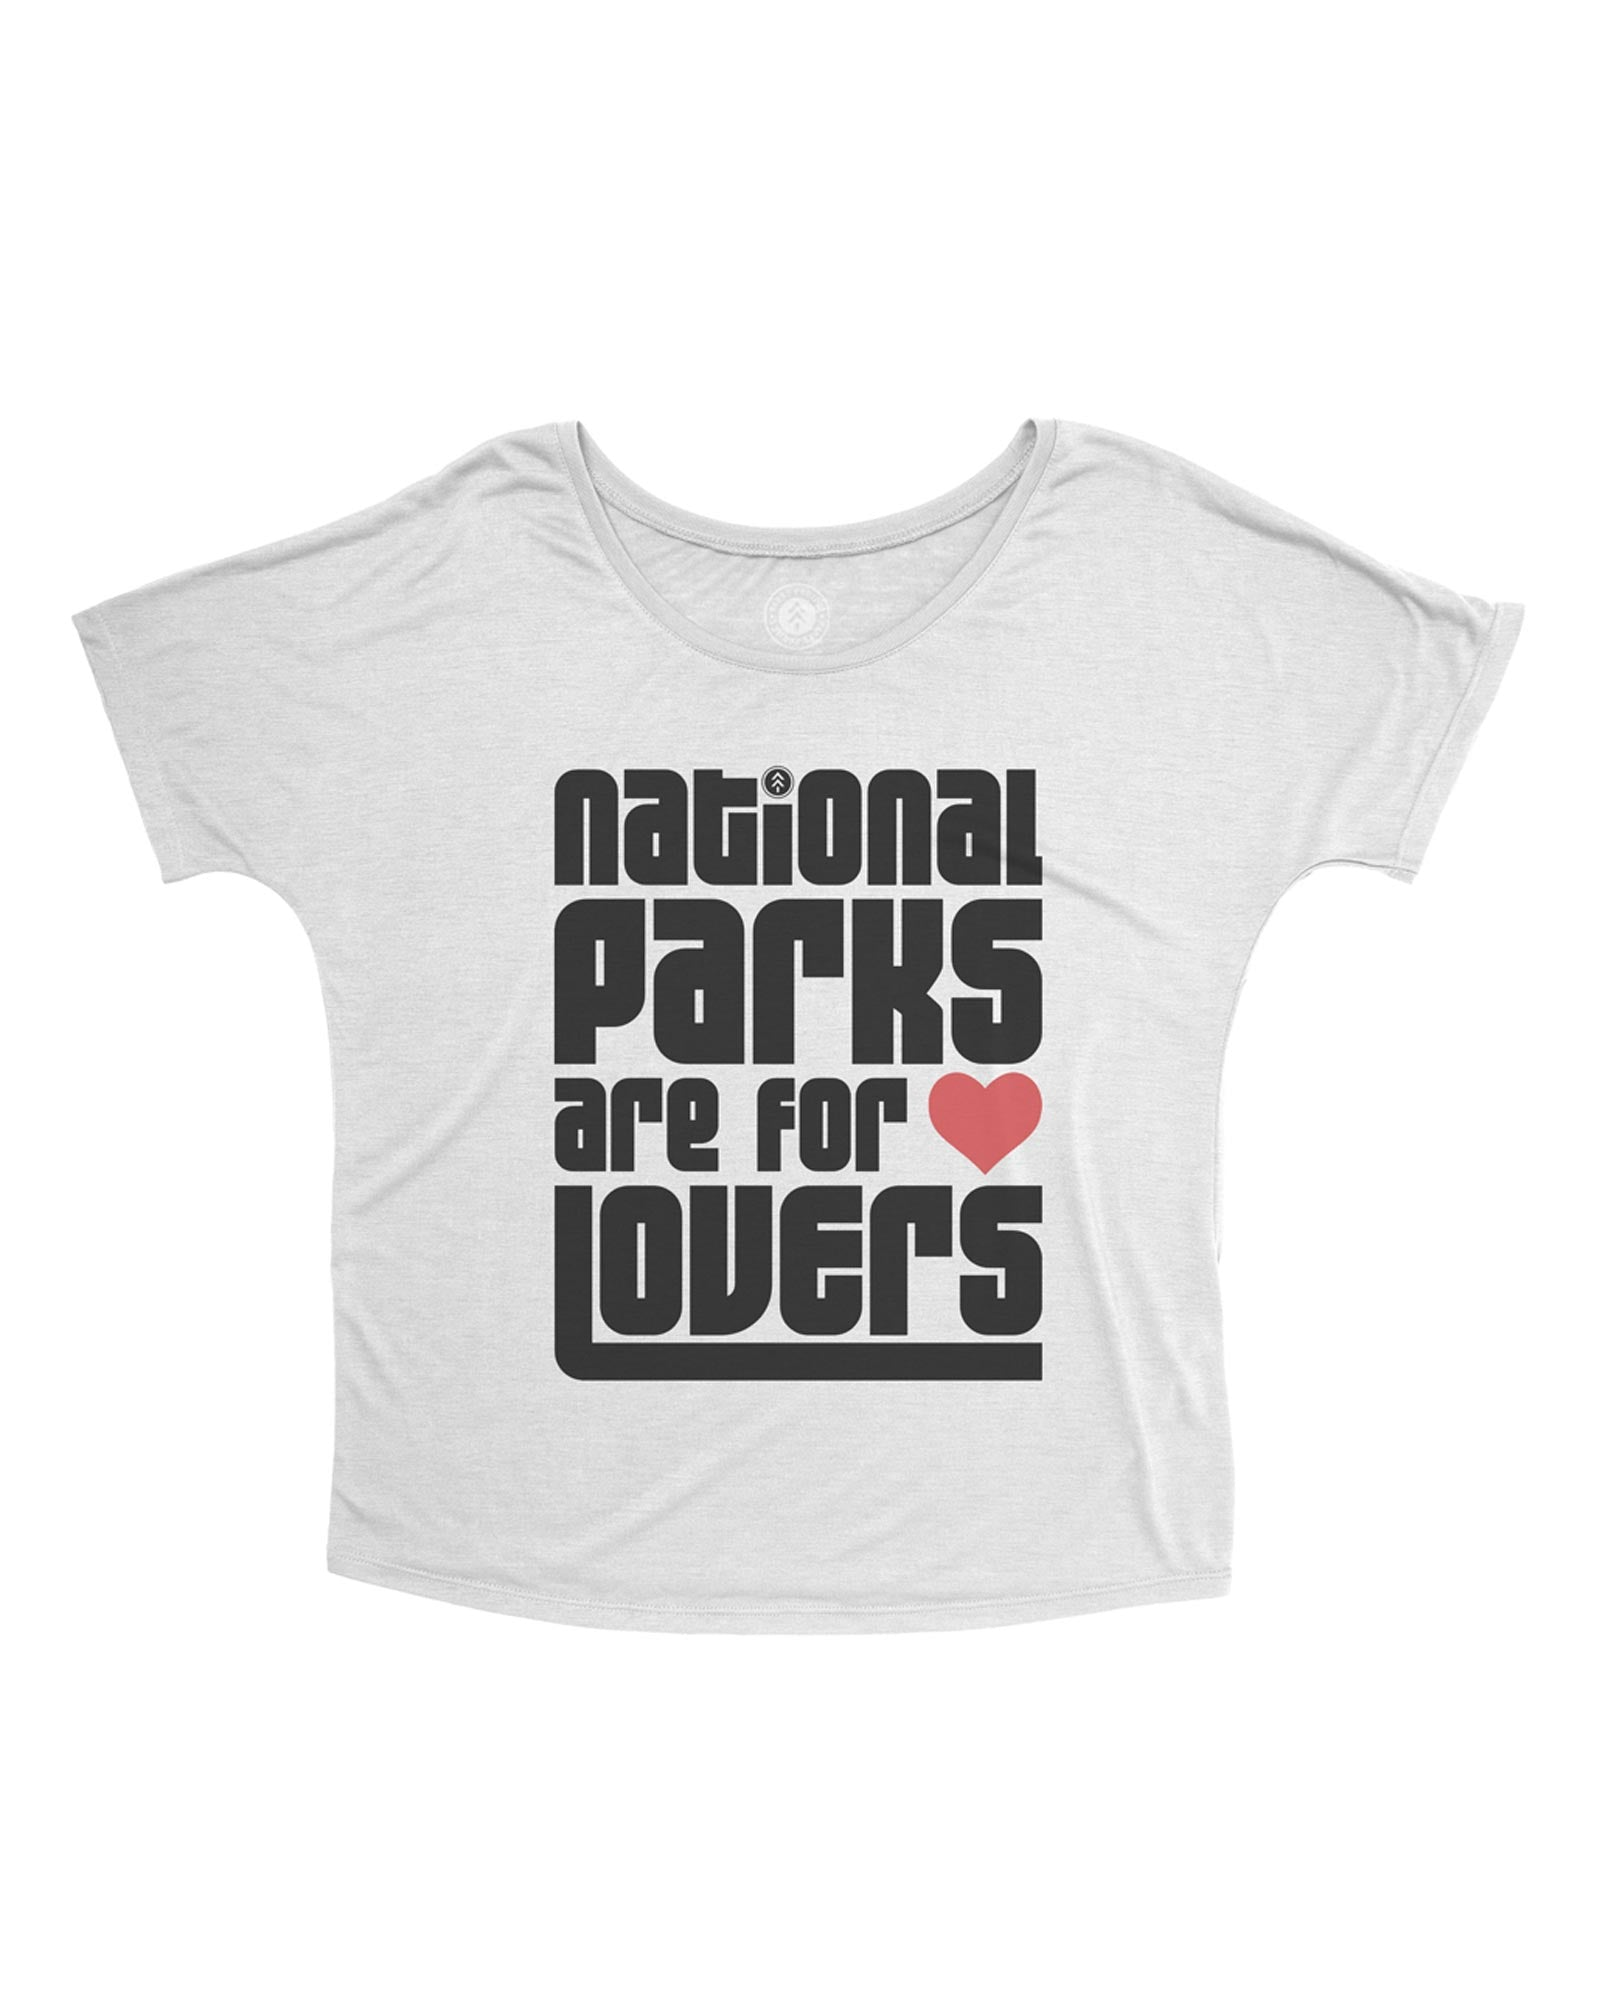 Parks for Lovers Woodstock Women's Shirt | Parks Project | National Park Shirt